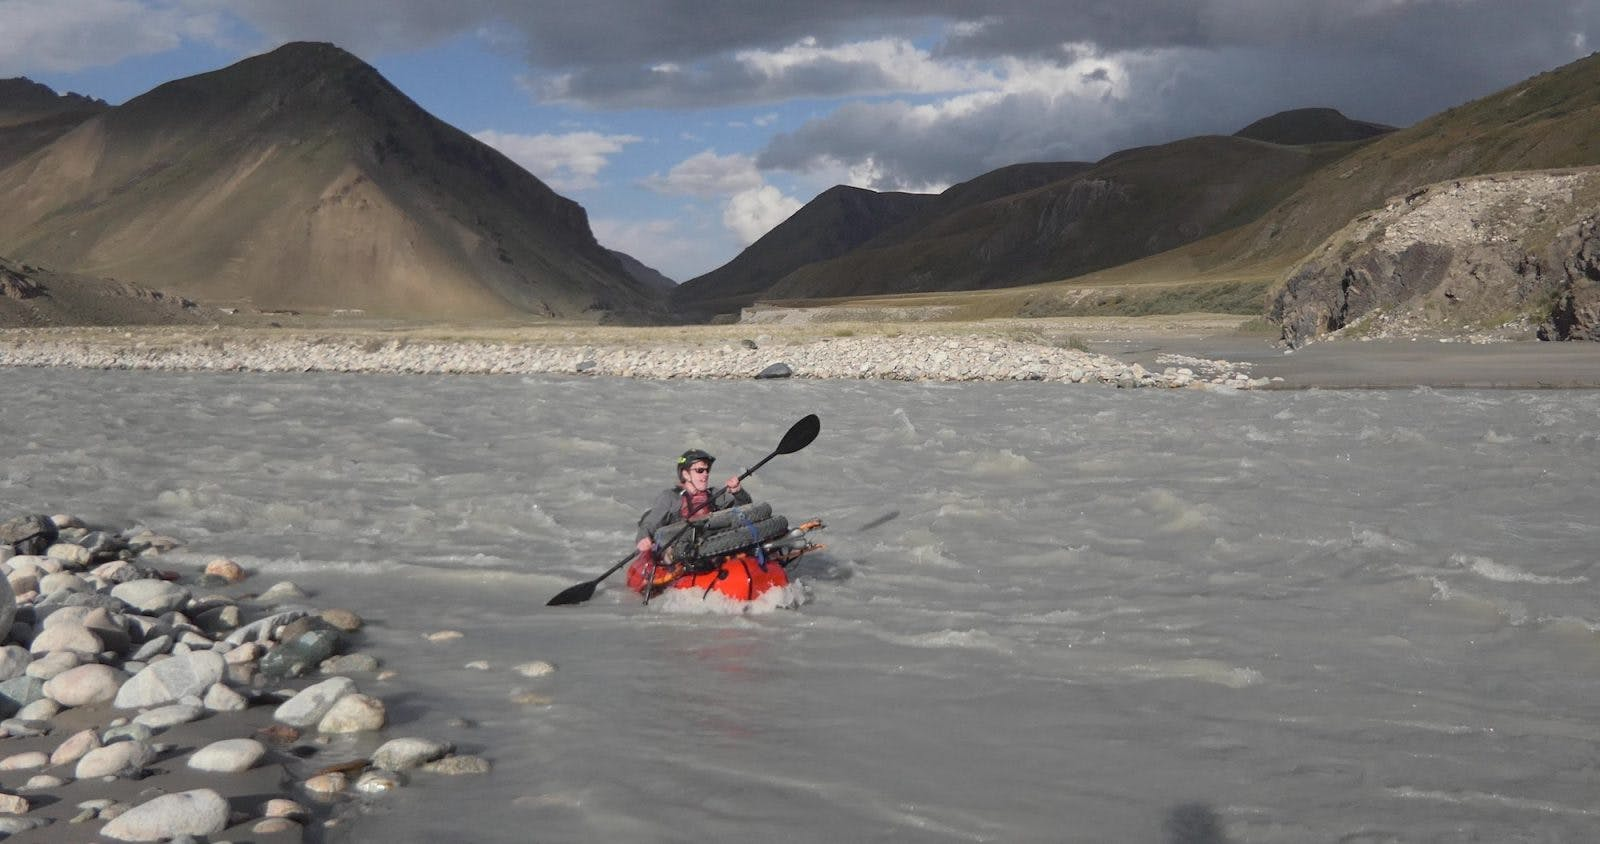 Mike McGrath pack rafting the Sary Jaz River, Kyrgyzstan.